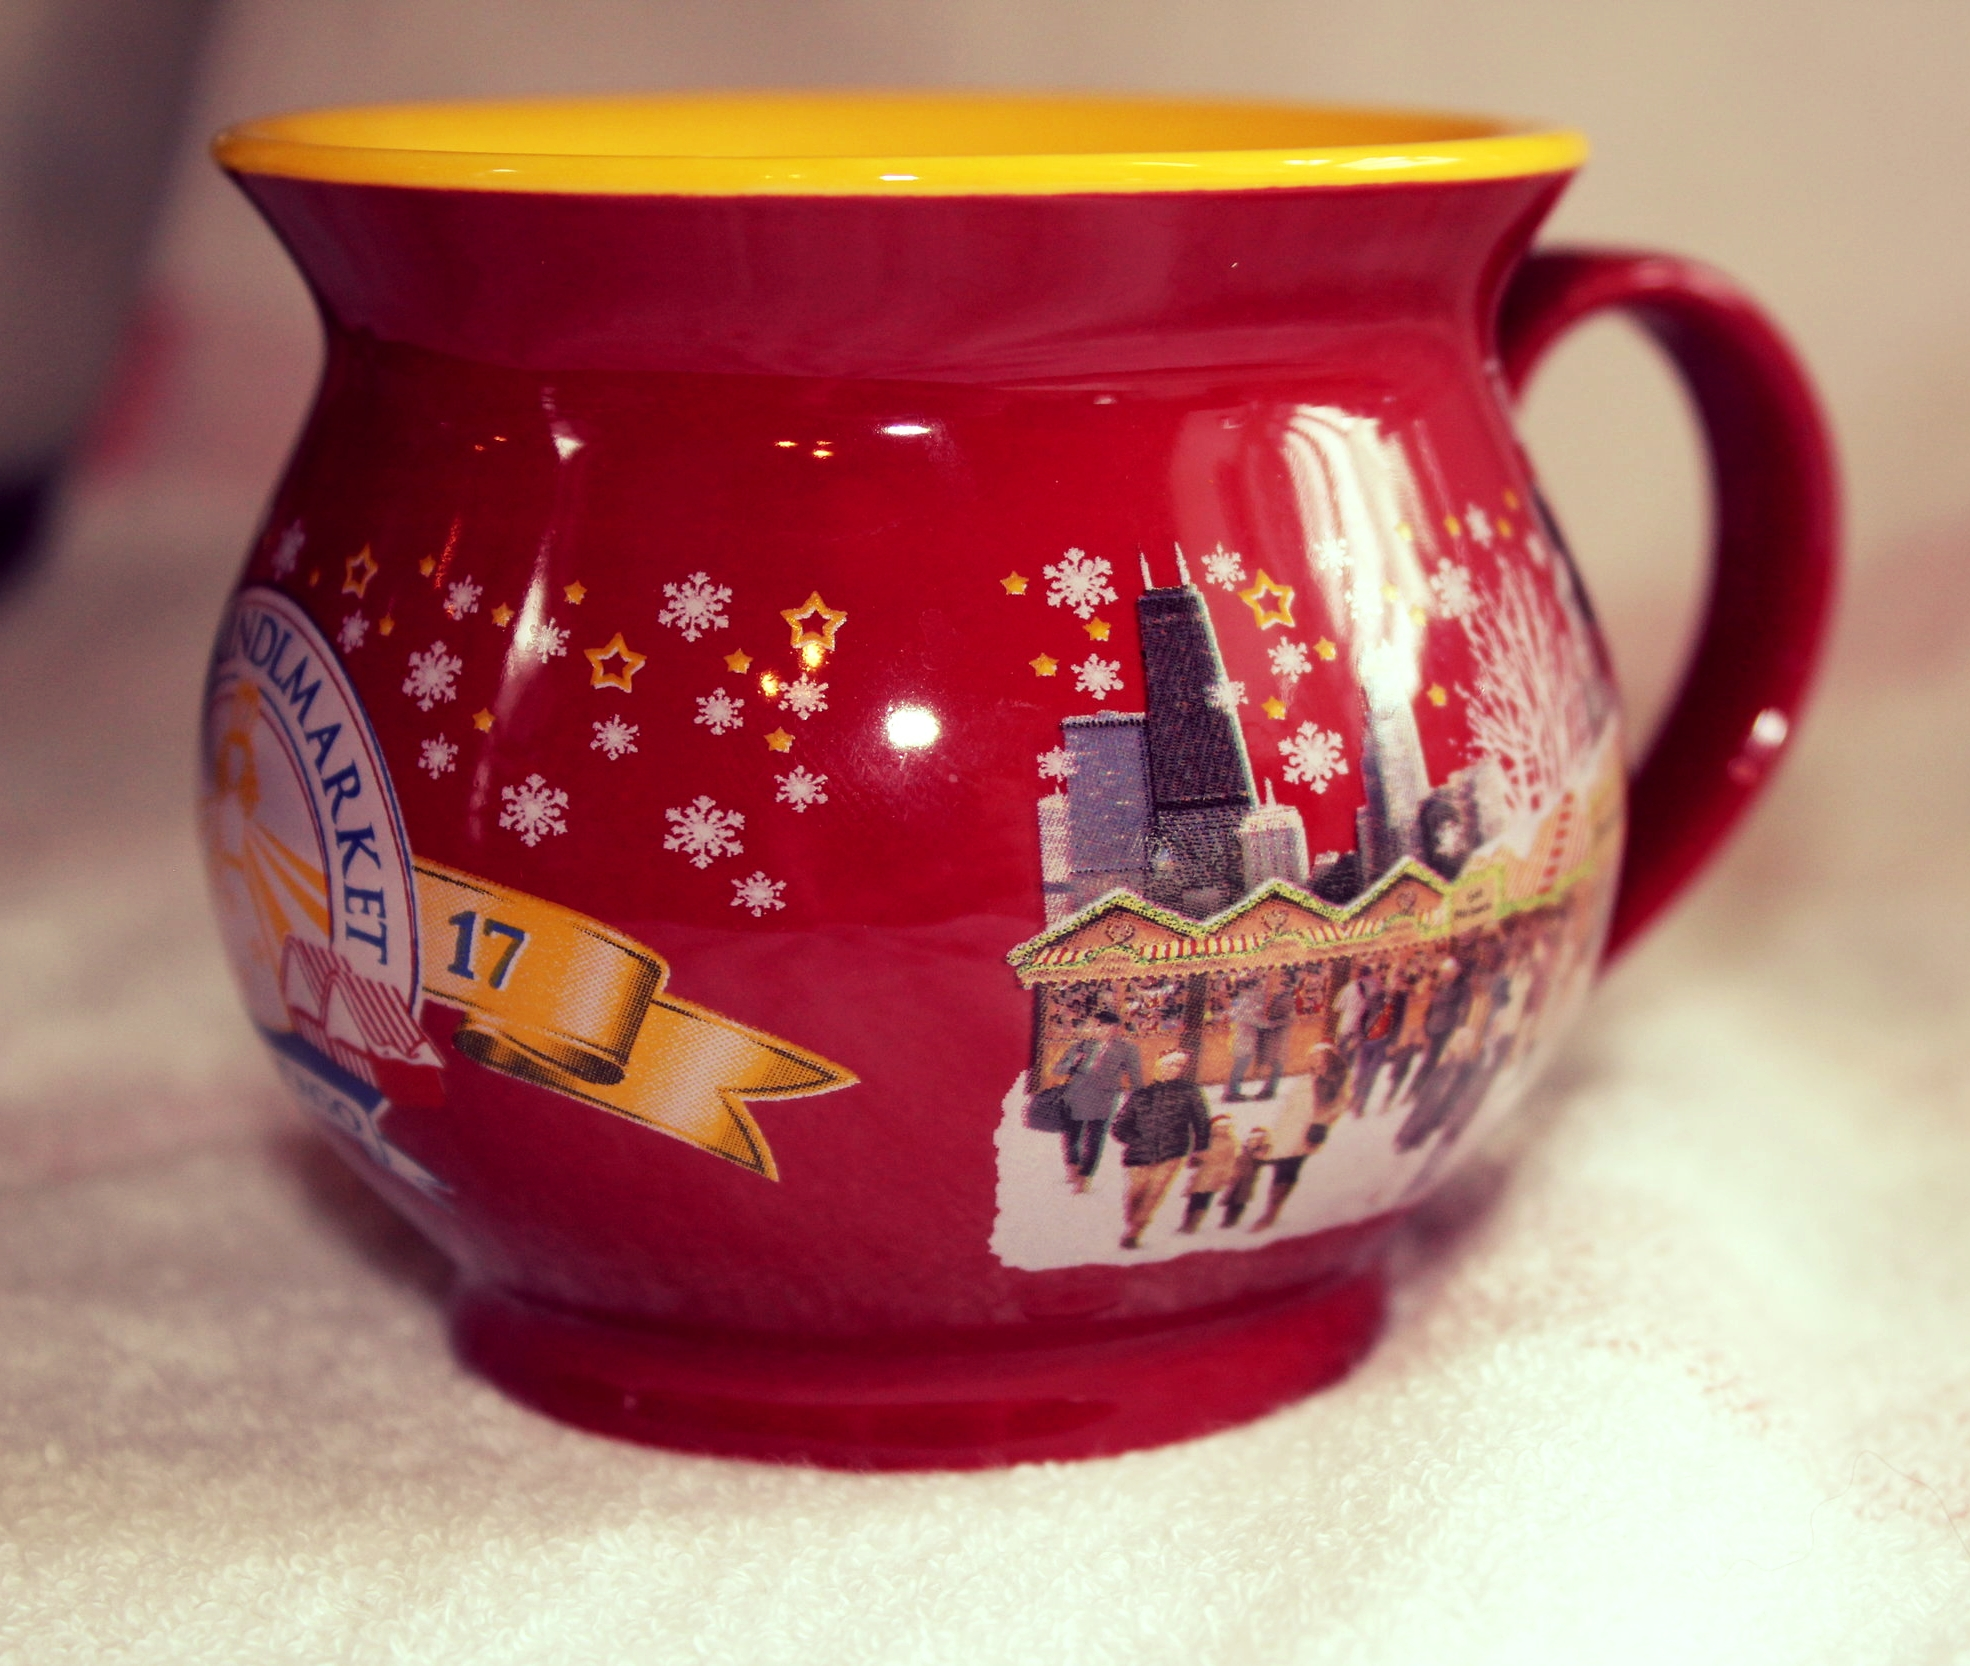 And don't forget to get your Gluehwein, Cider or Hot Chocolate in a commemorative mug!